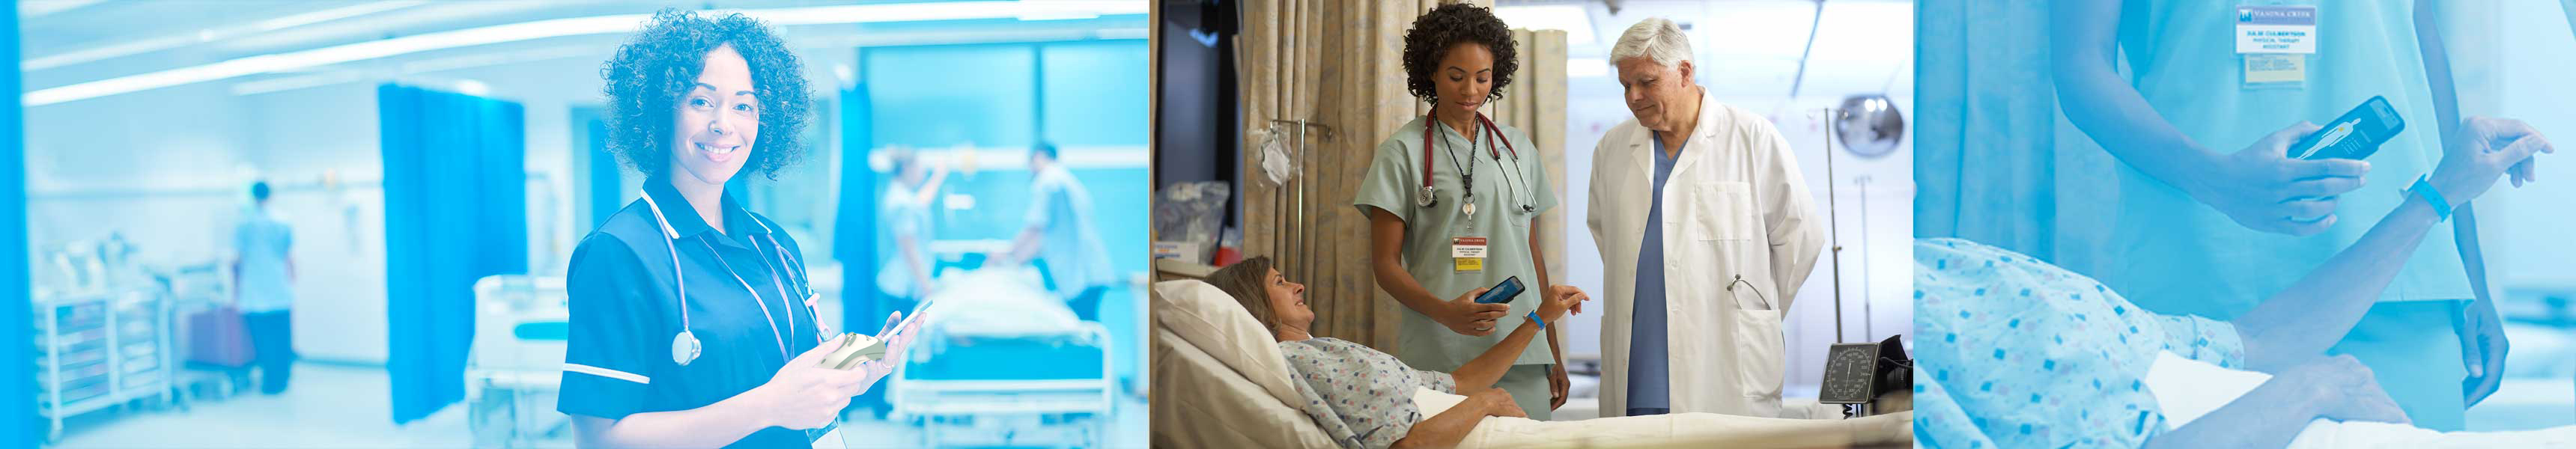 Barcode Scanners for patient care